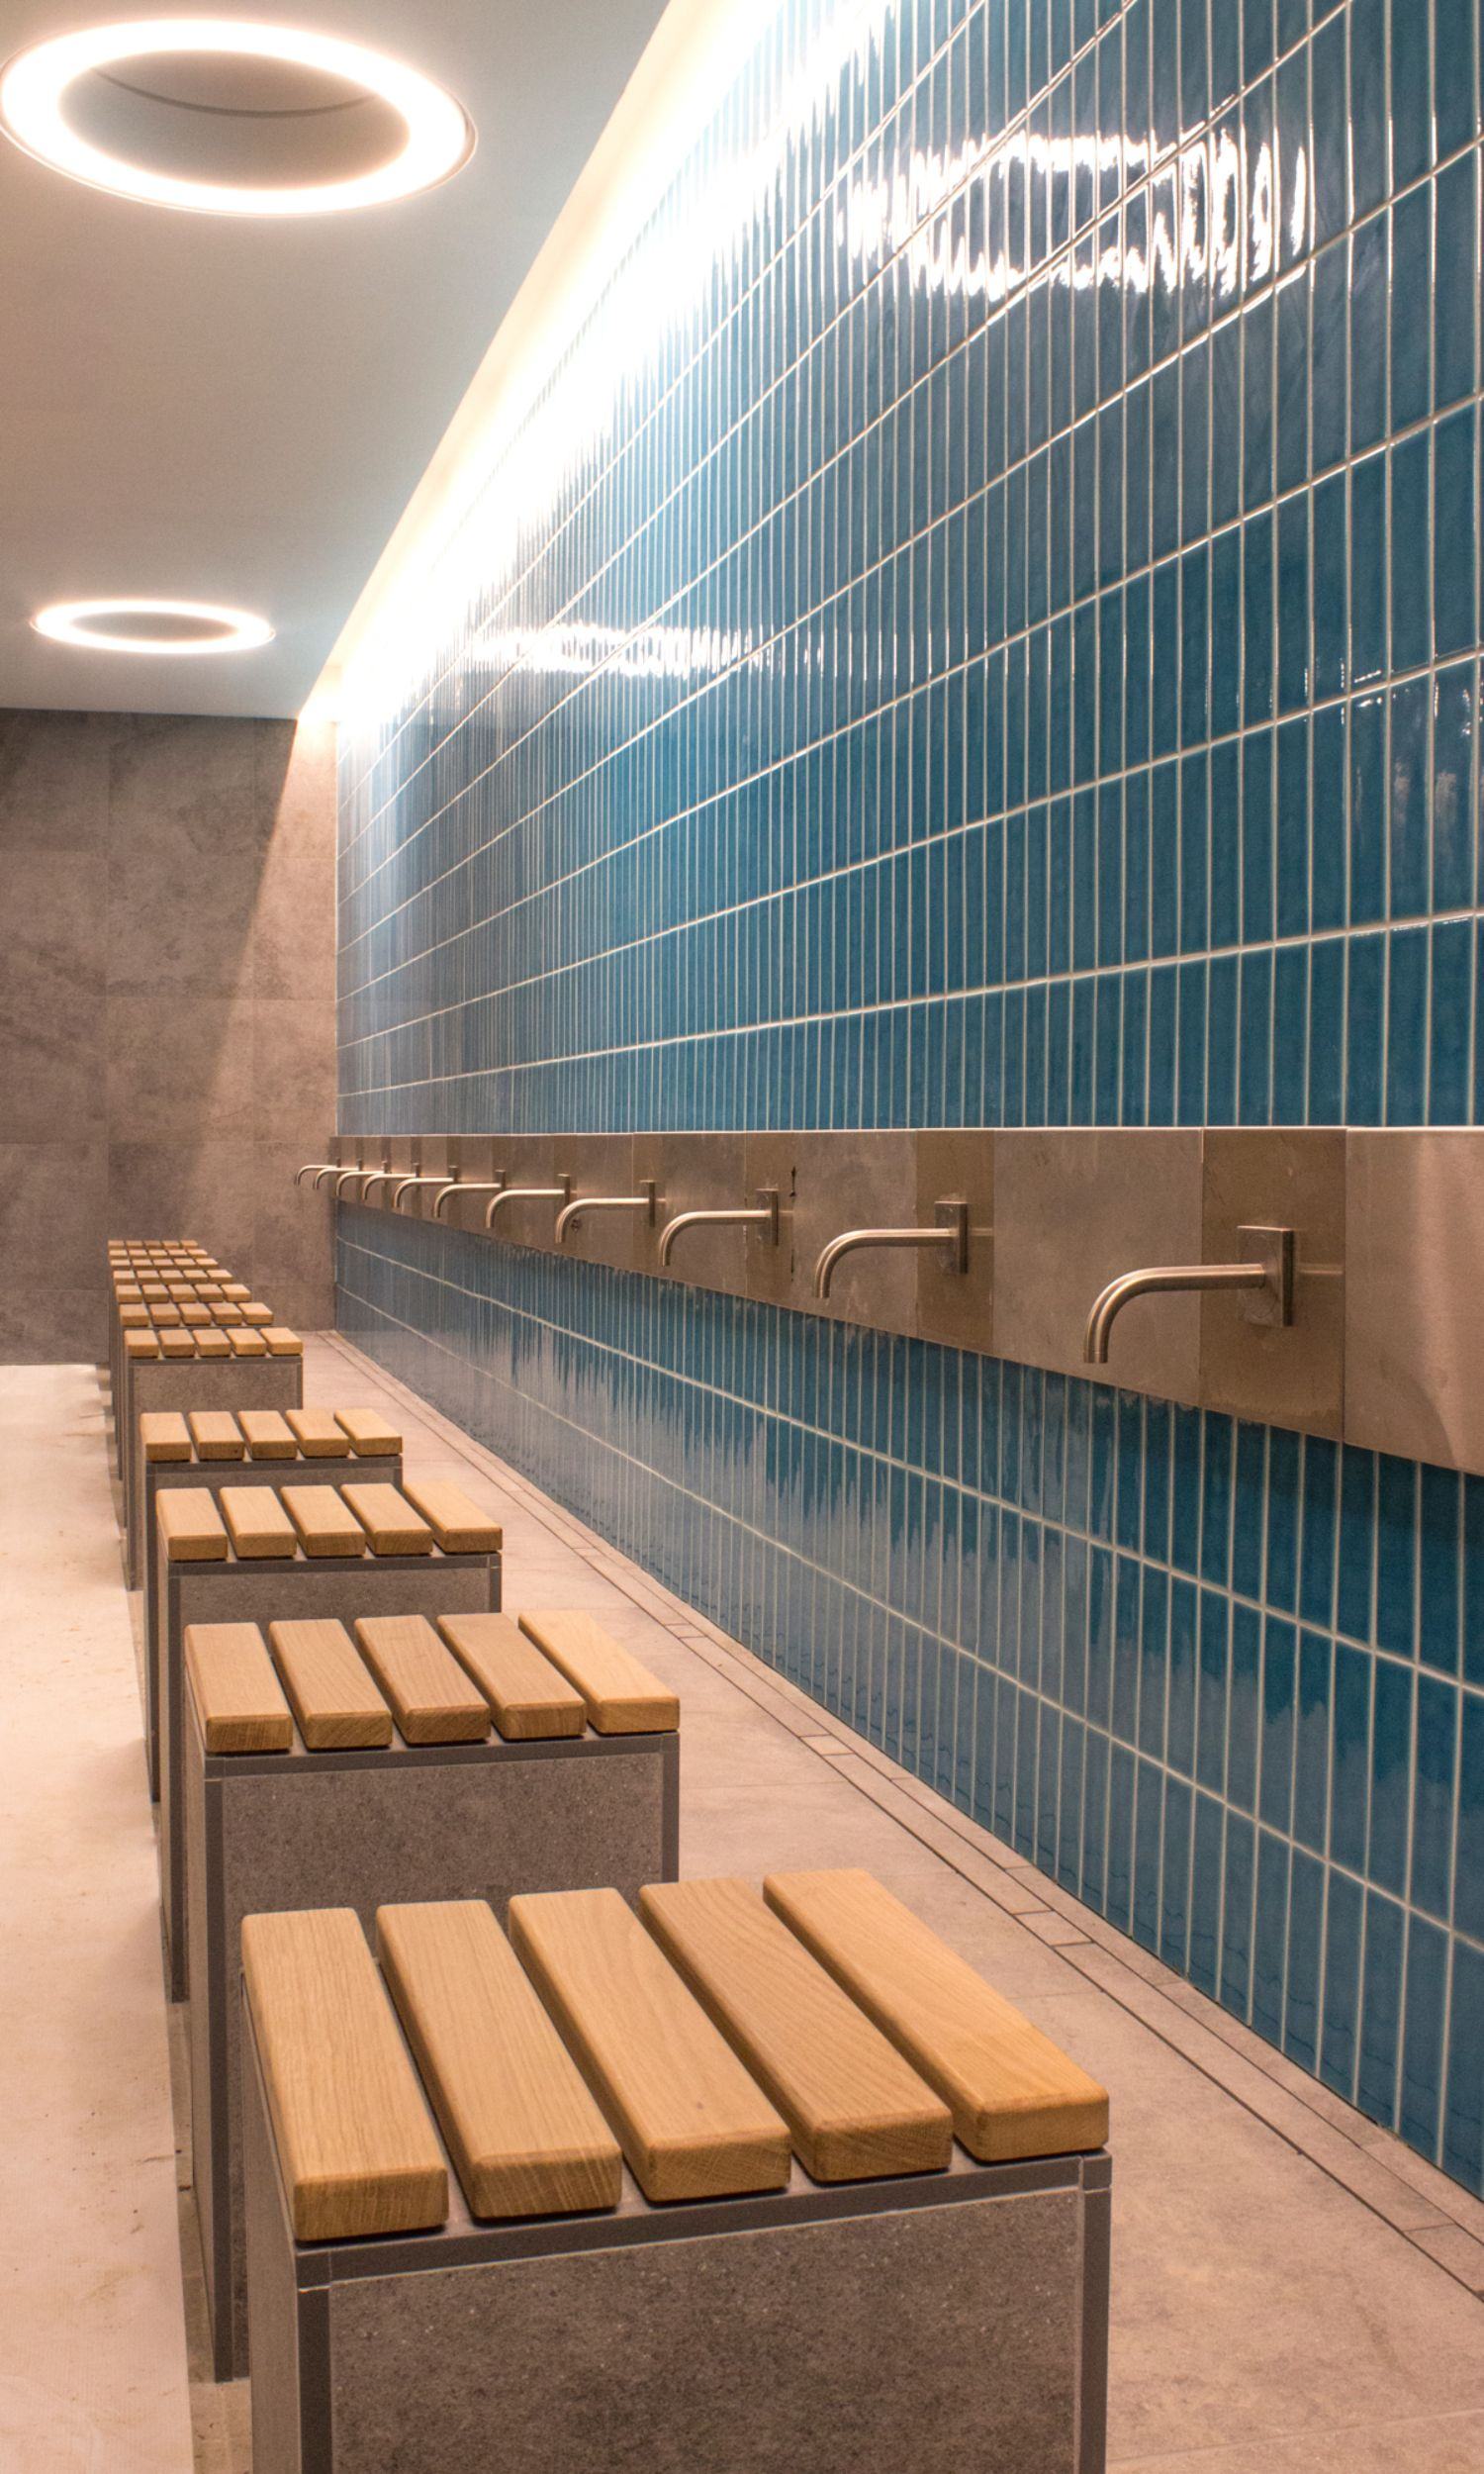 The photograph shows the washing area of the Cambridge Mosque. The stools are made of stone and clad with wooden panels. The taps are fixed to a blue slab wall.